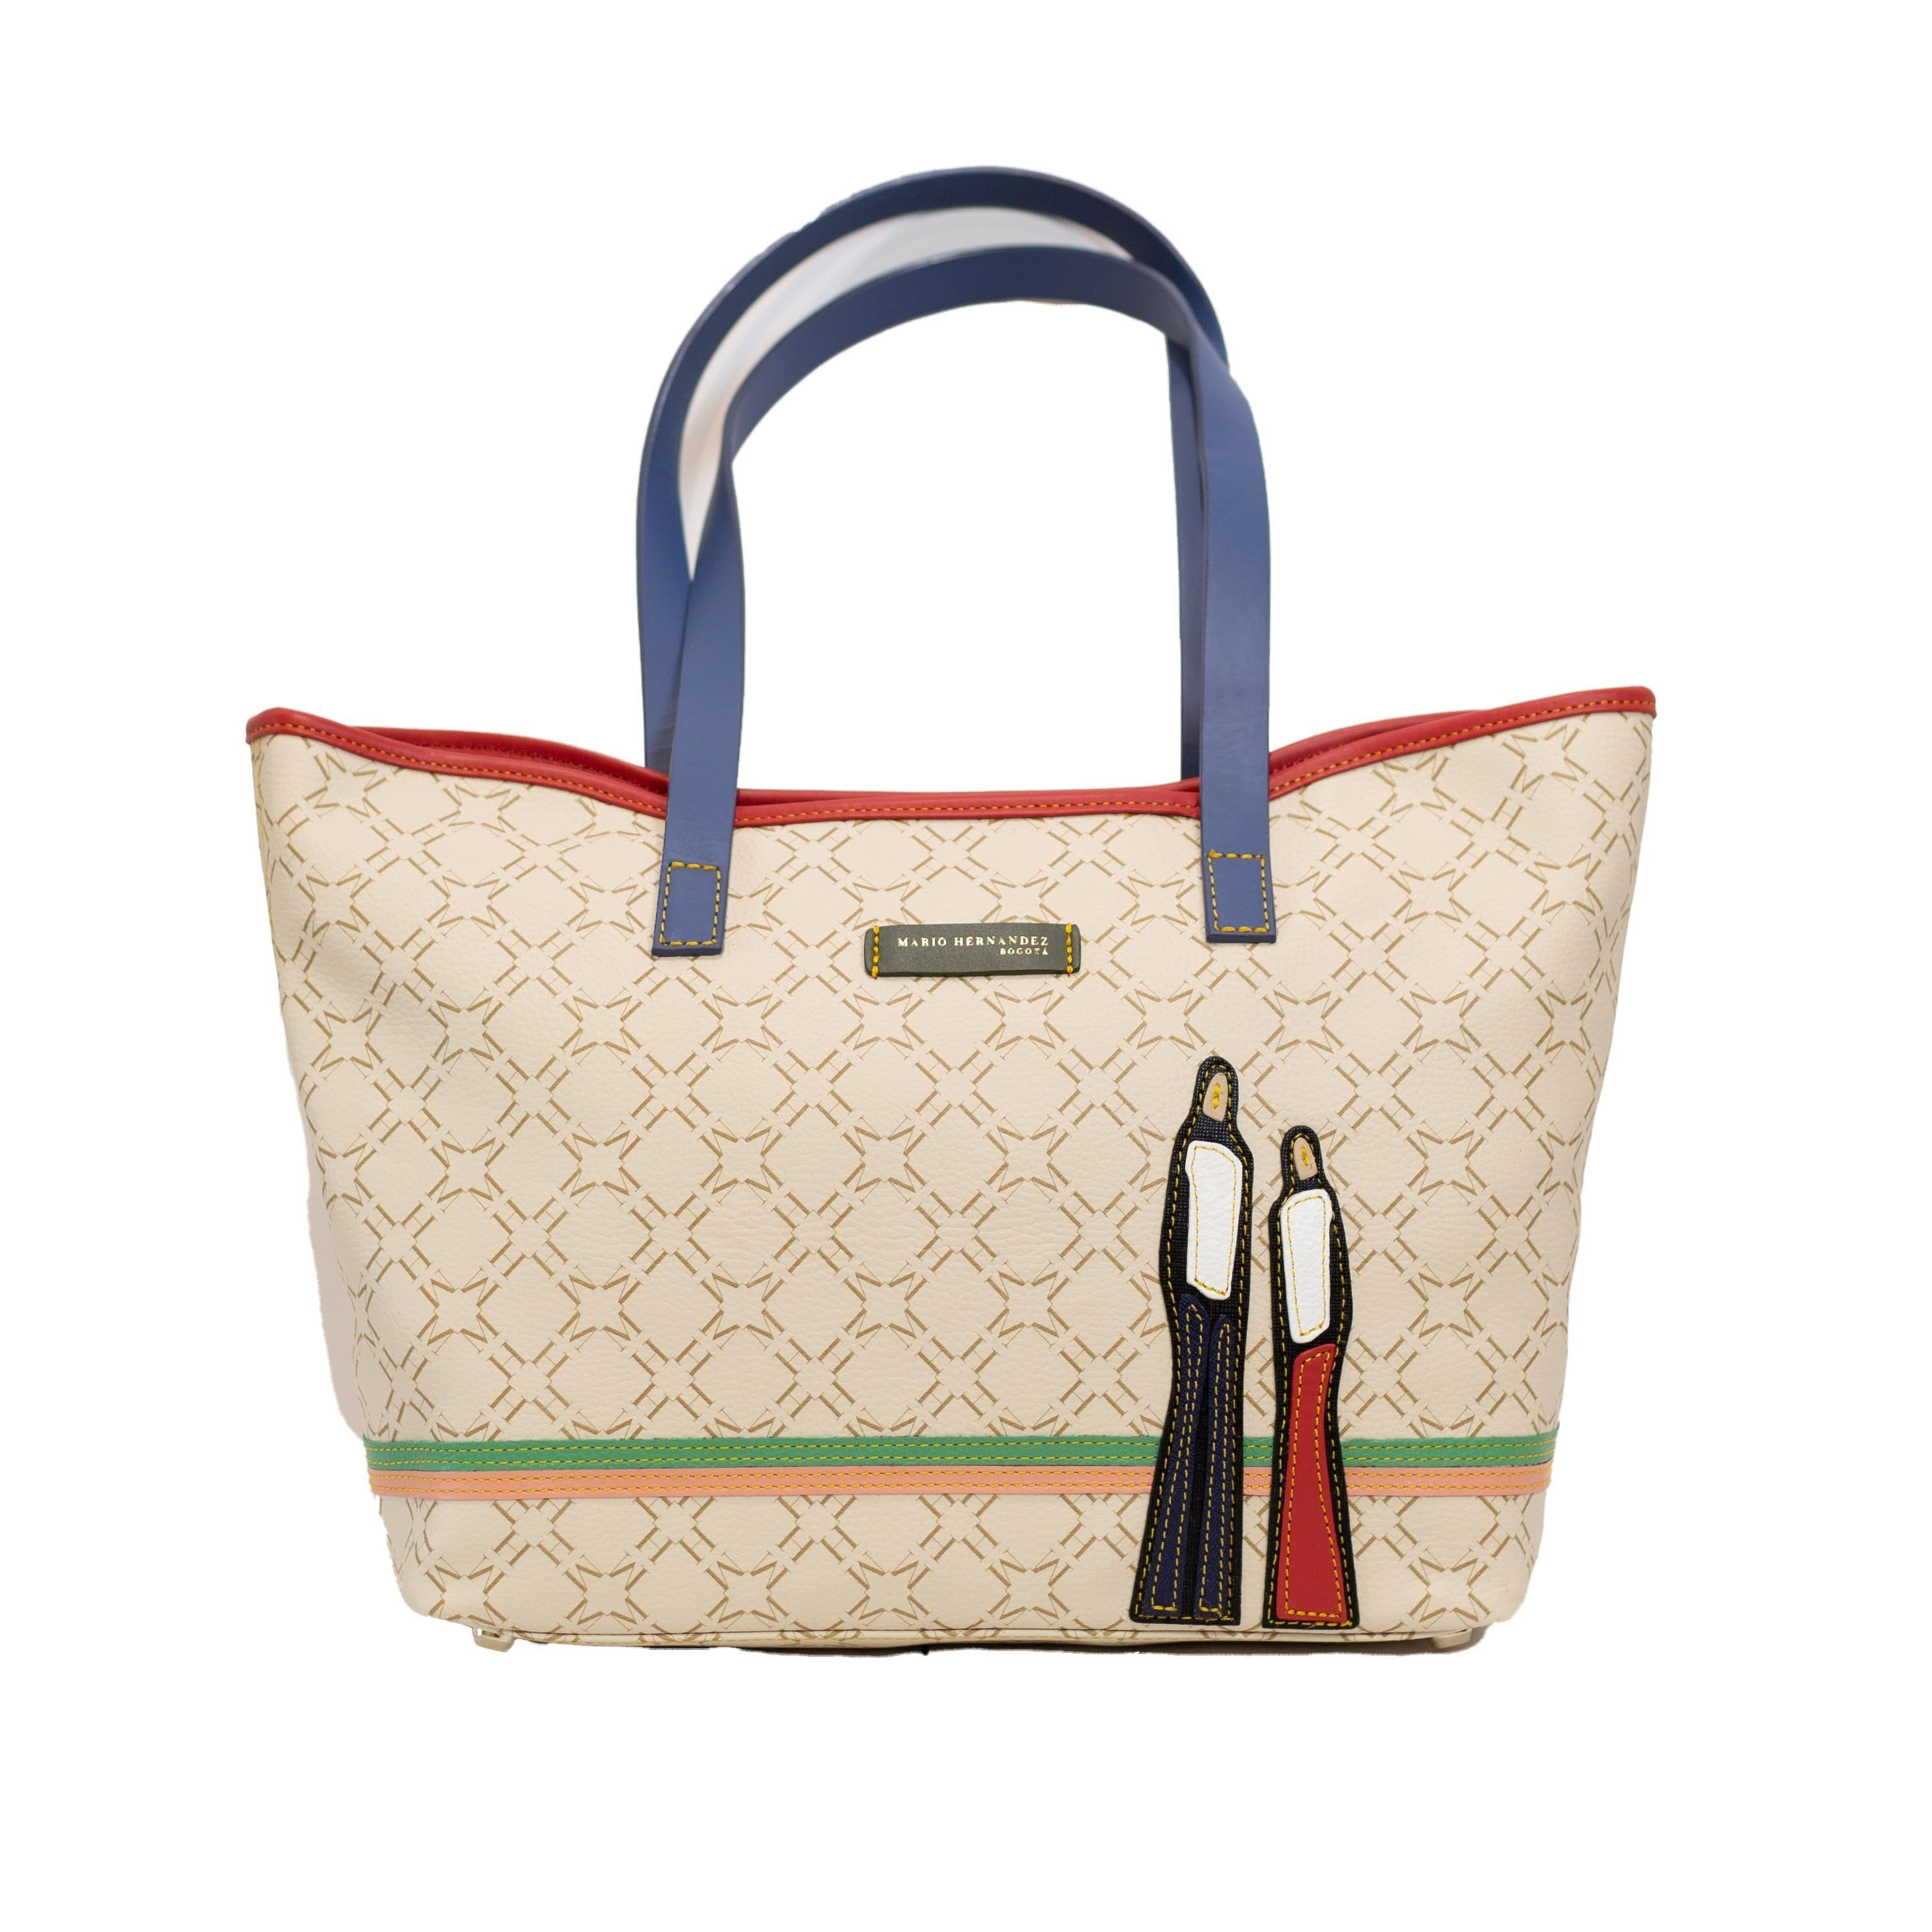 Together Signature Tote